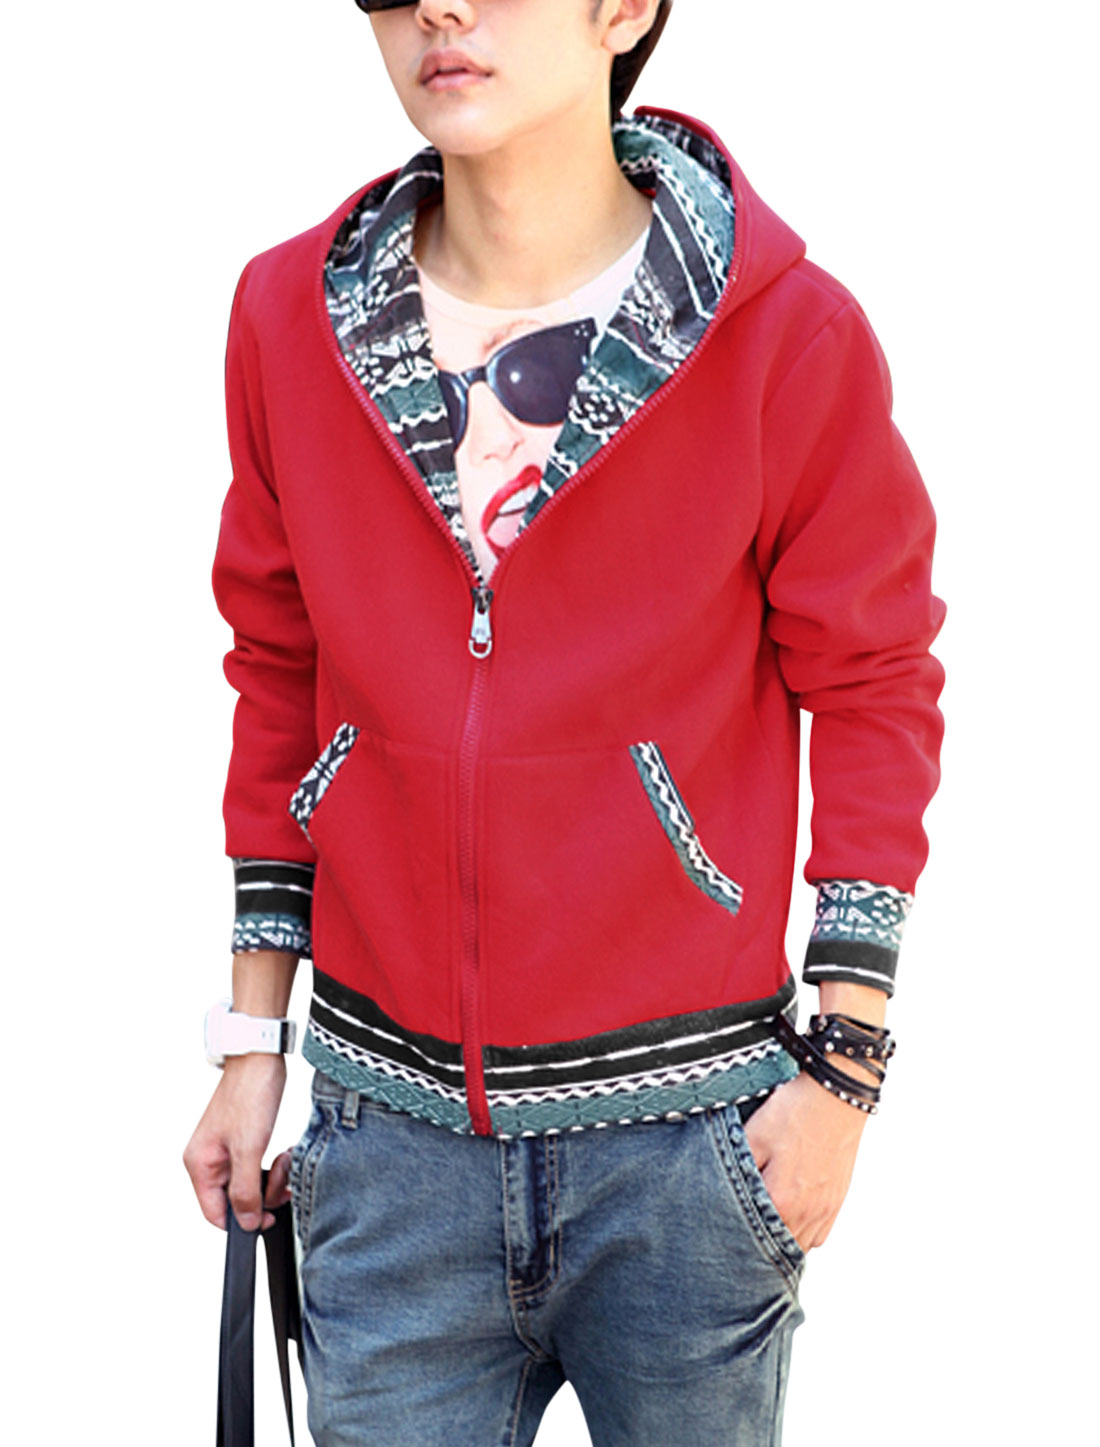 Men Geometric Prints Double Pockets Front Hooded Jacket Red M